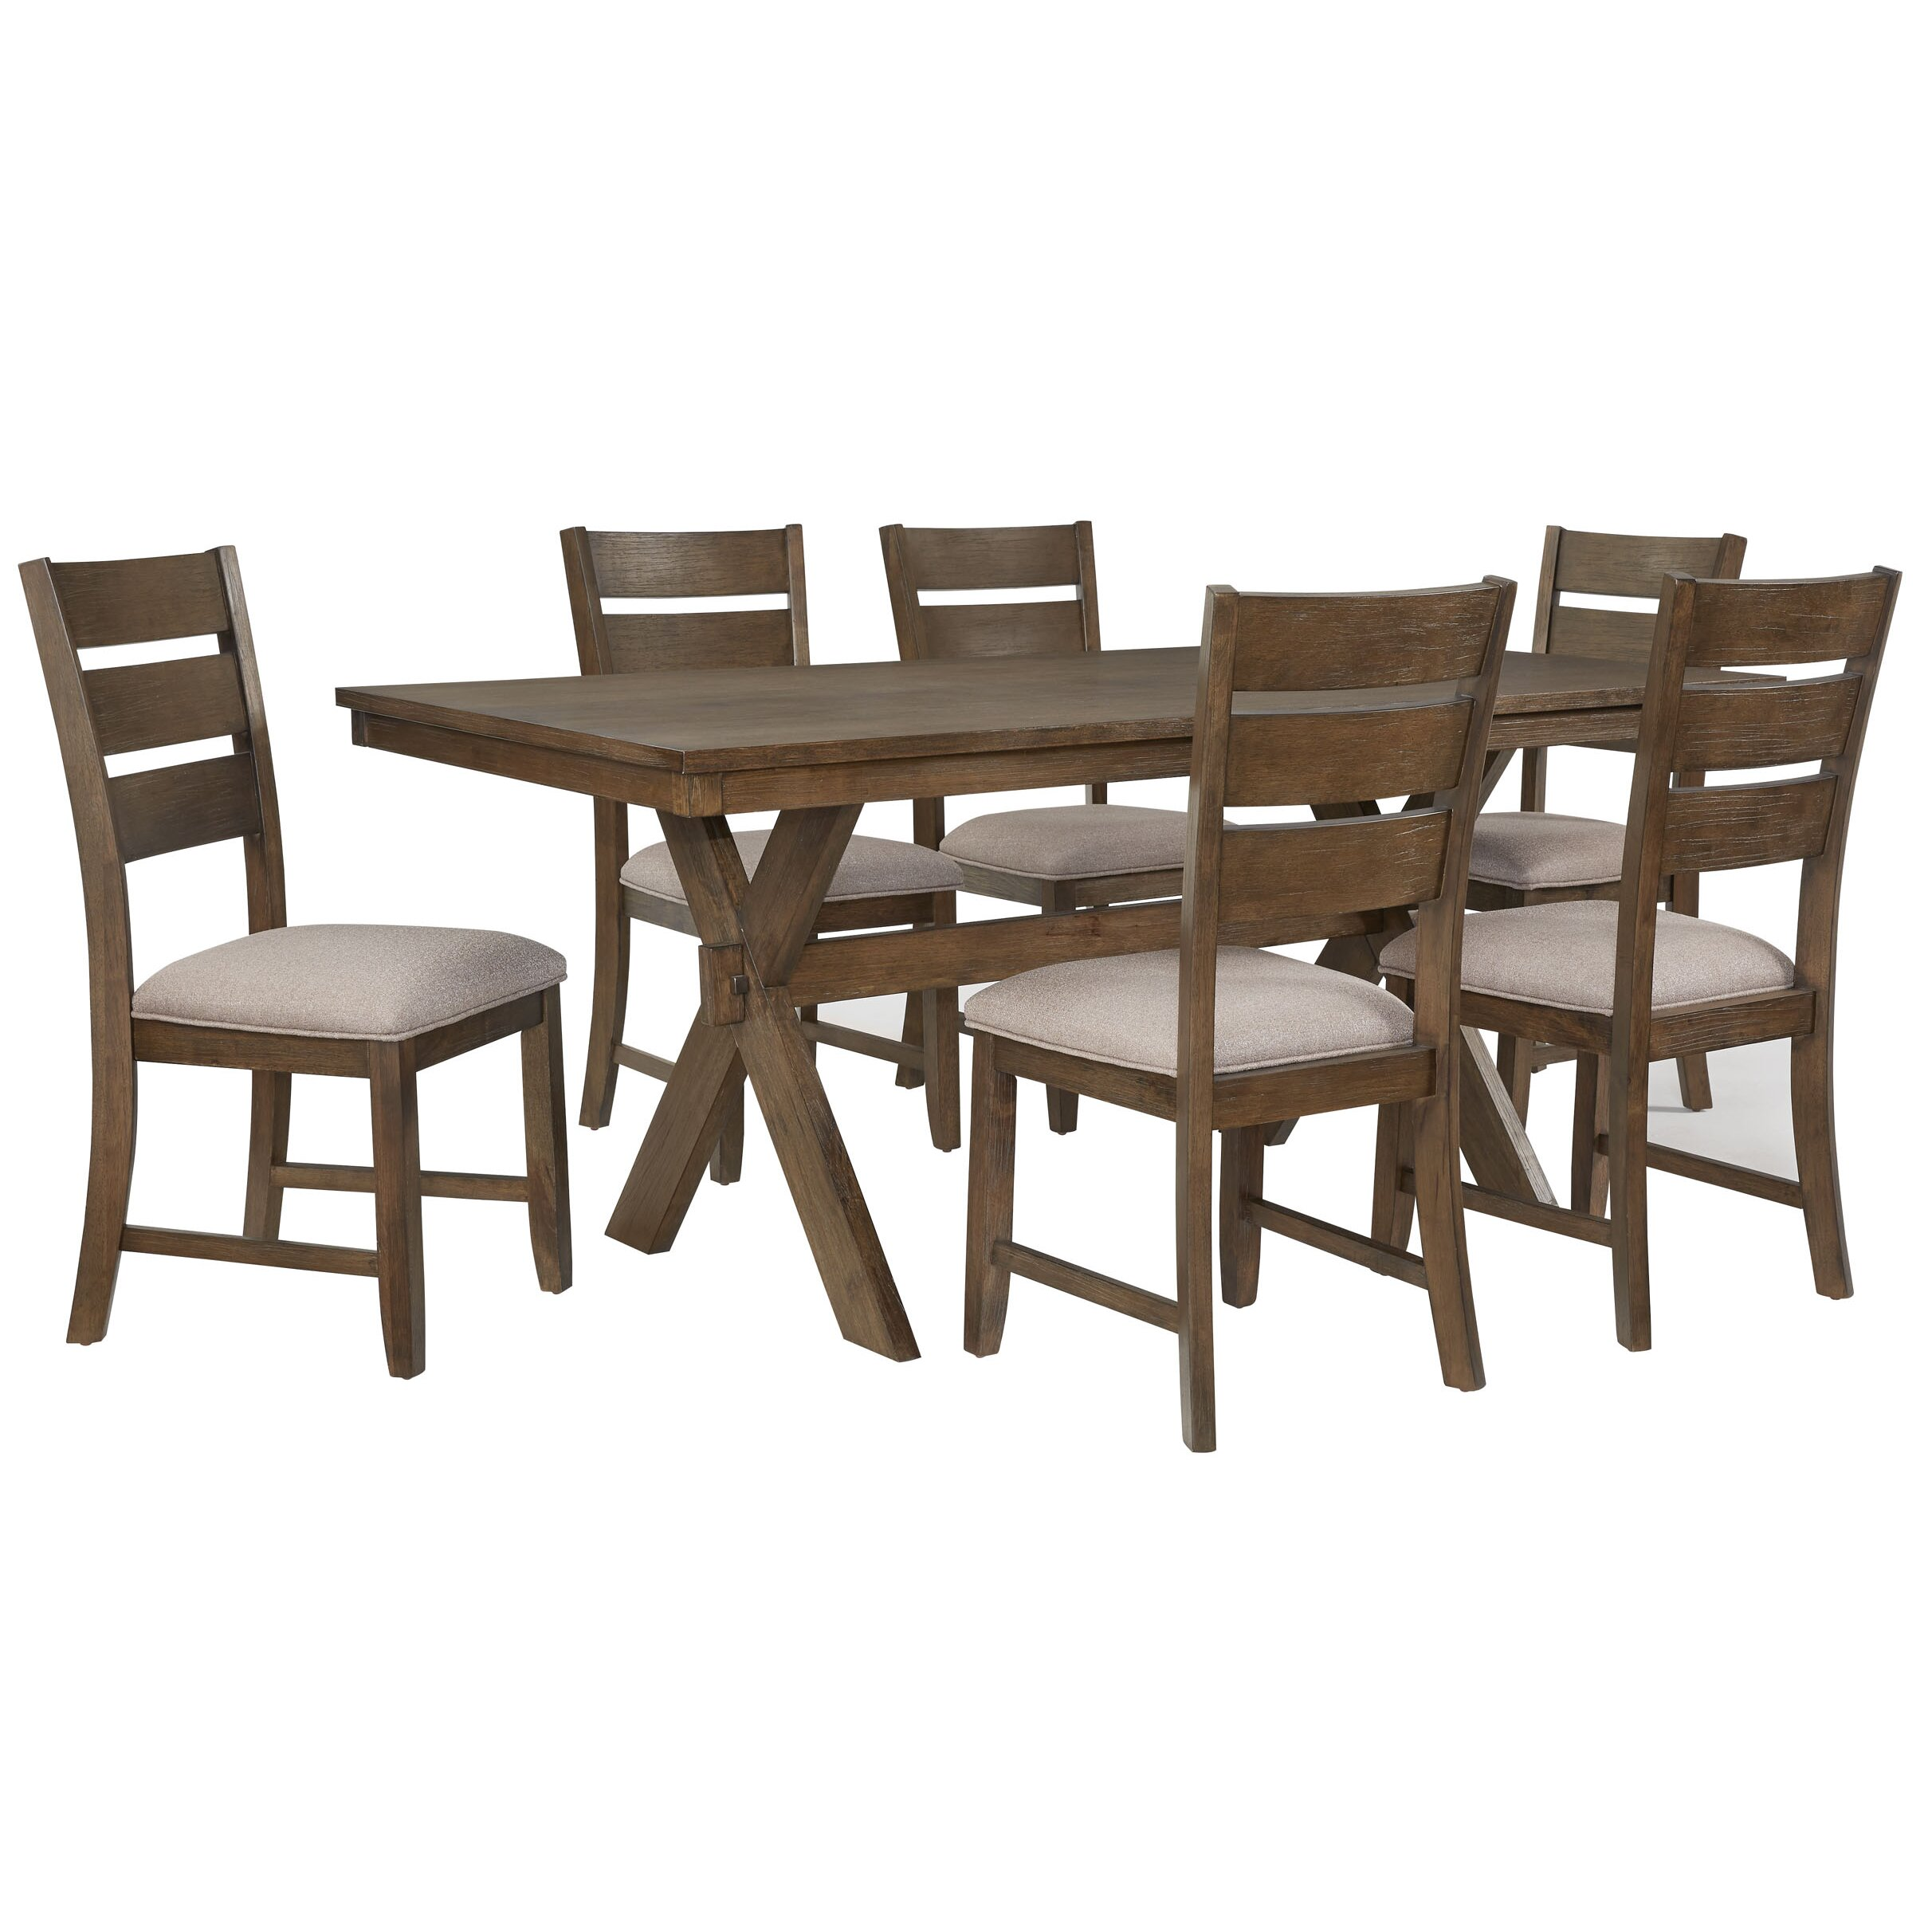 Standard Furniture 7 Piece Dining Set & Reviews